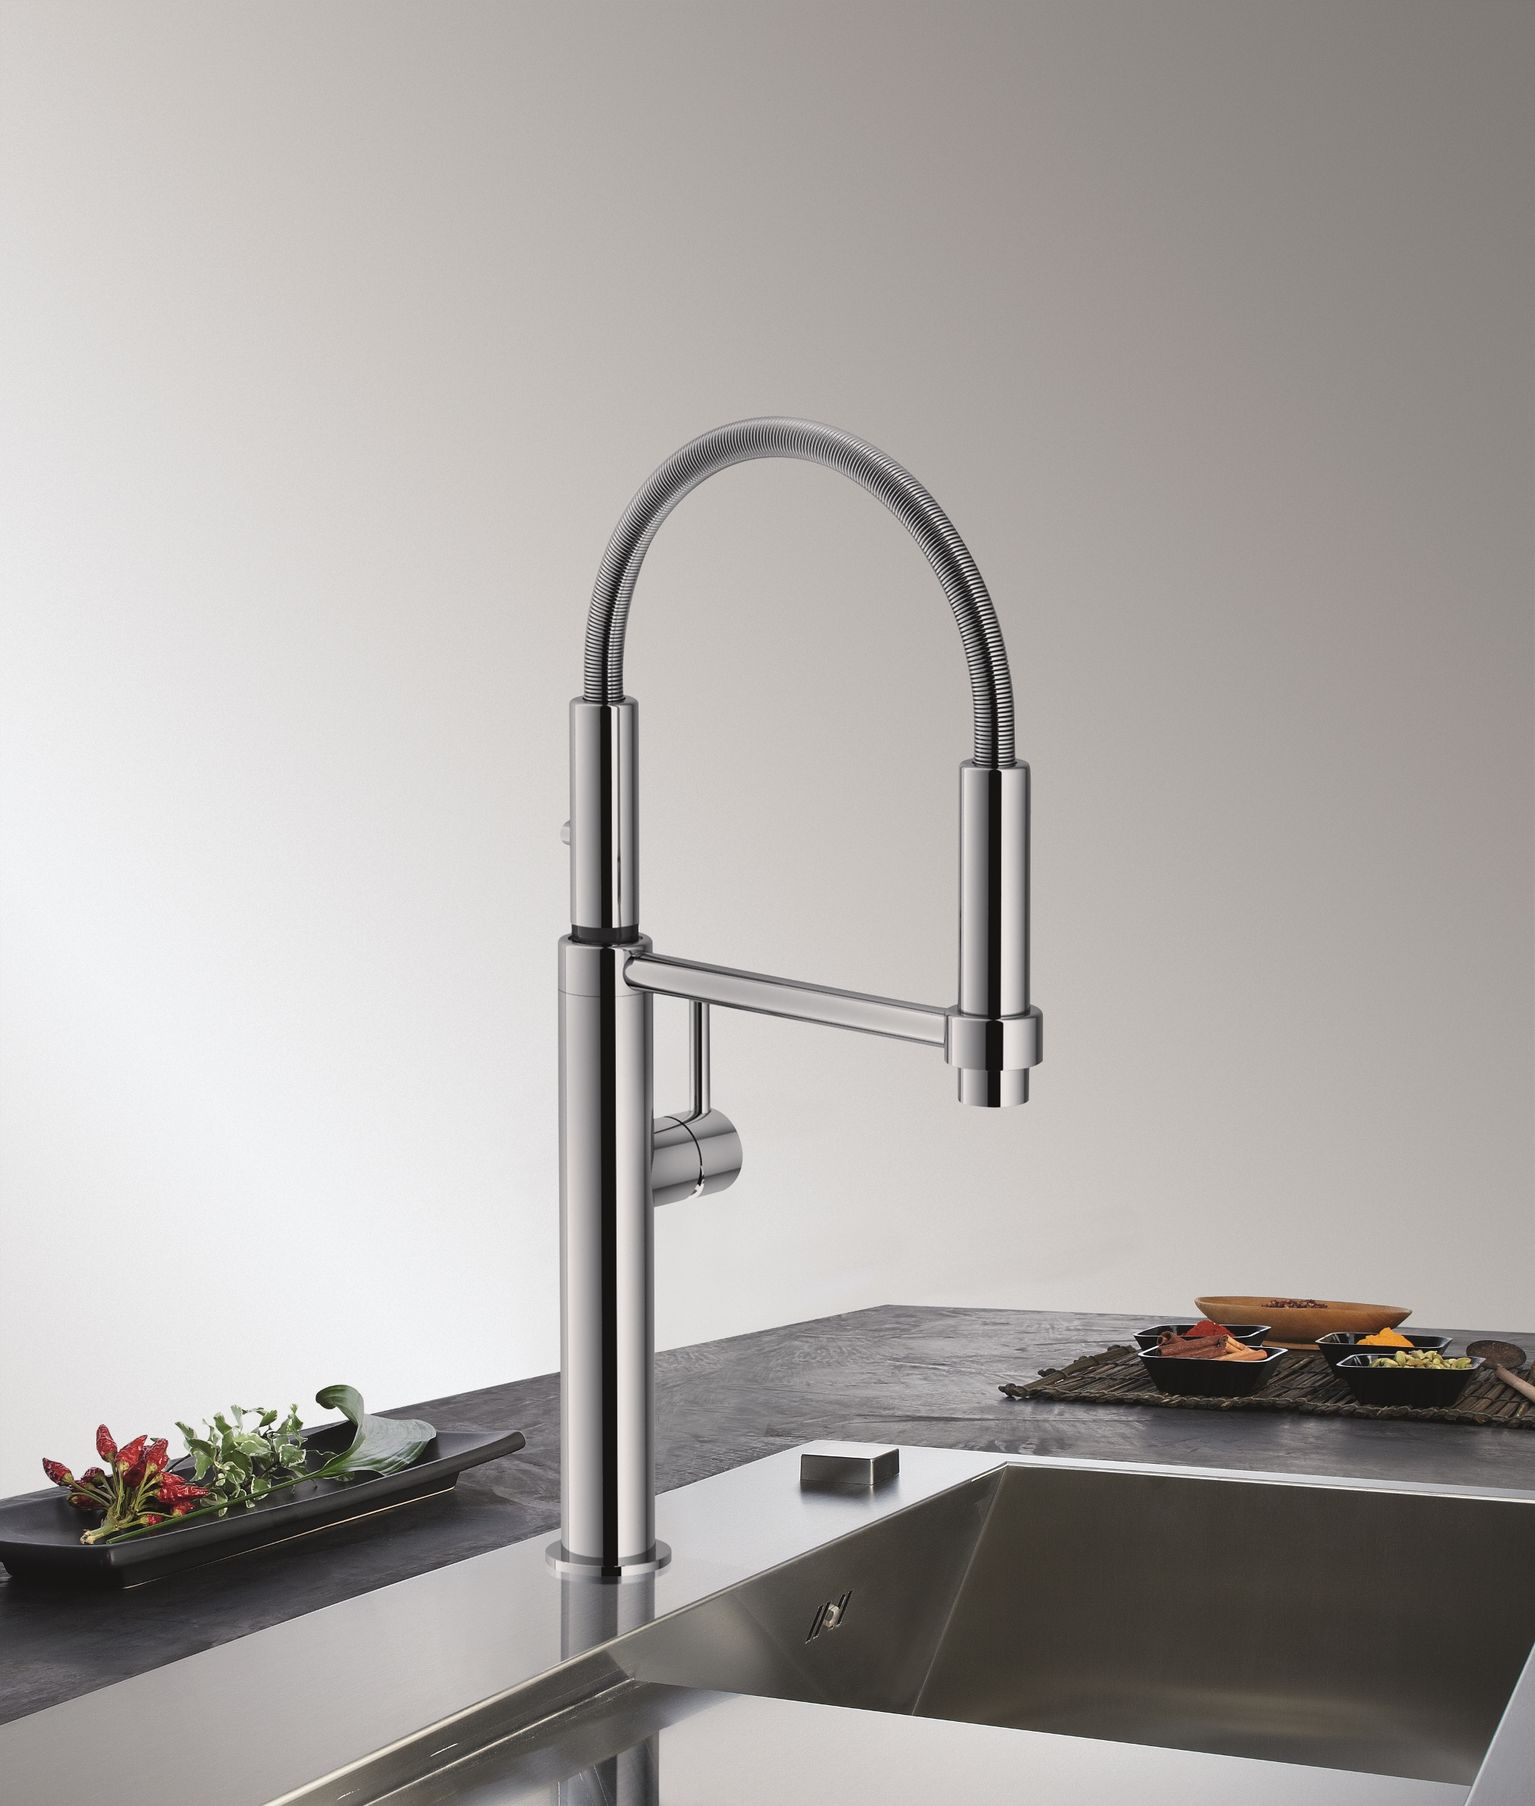 franke house beautiful harmony sink steel massief stainless countertop massive from kitchen blog faucets faucet of